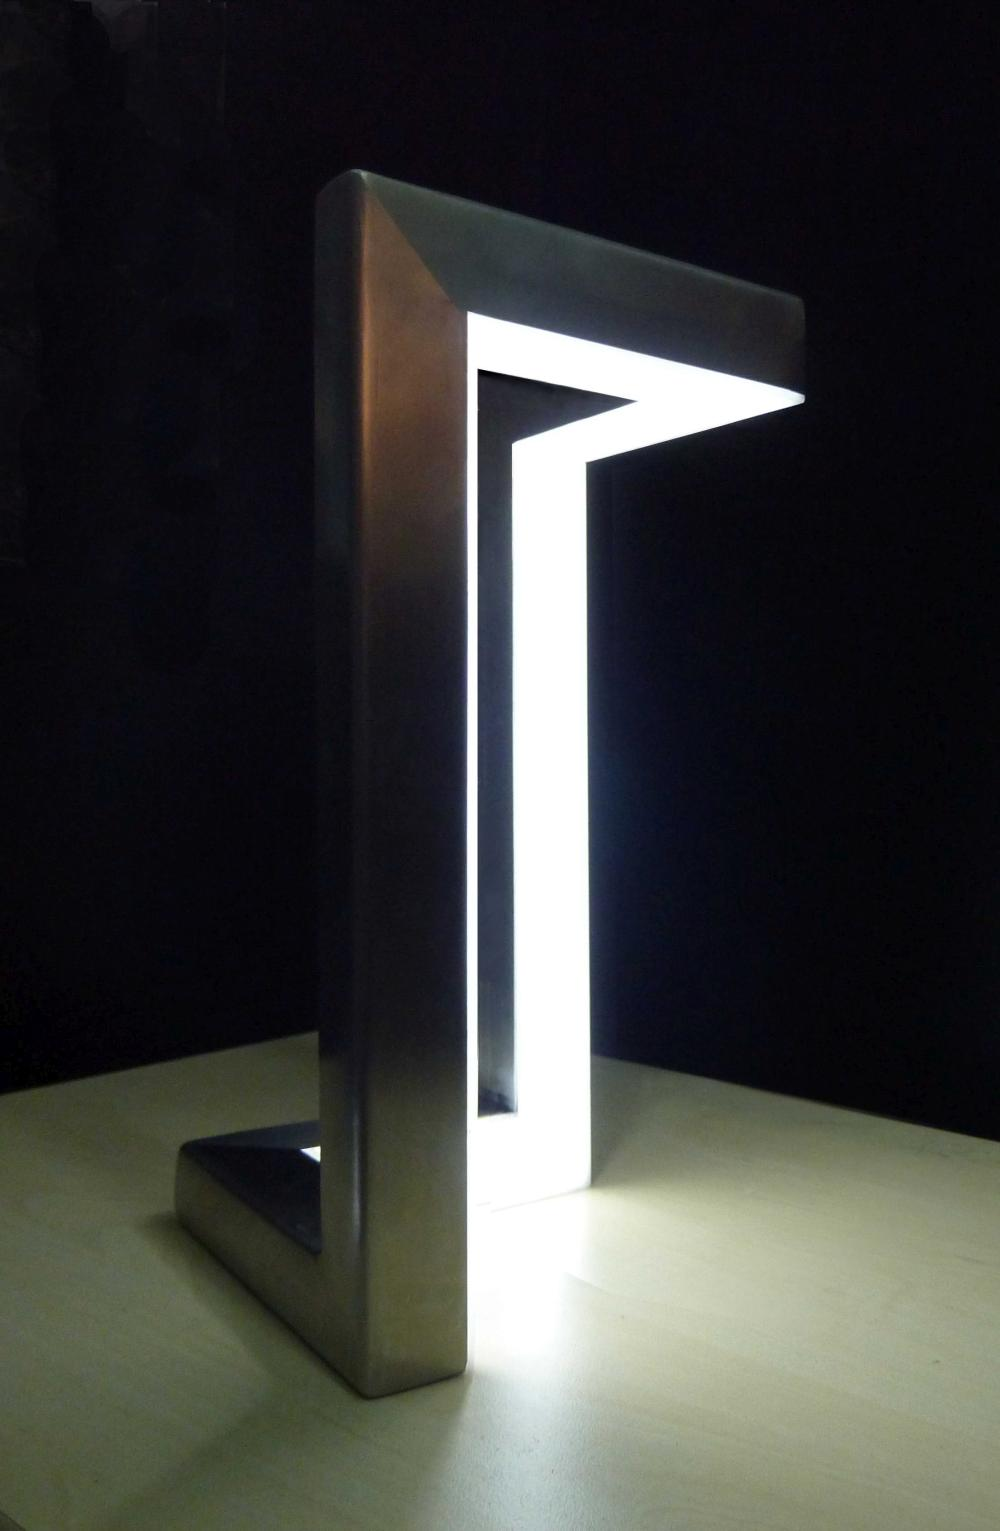 https://nbc-arhitect.ro/wp-content/uploads/2020/10/NBC-Arhitect-_-product-design-_-frame-lamp-_-Romania_7.jpg